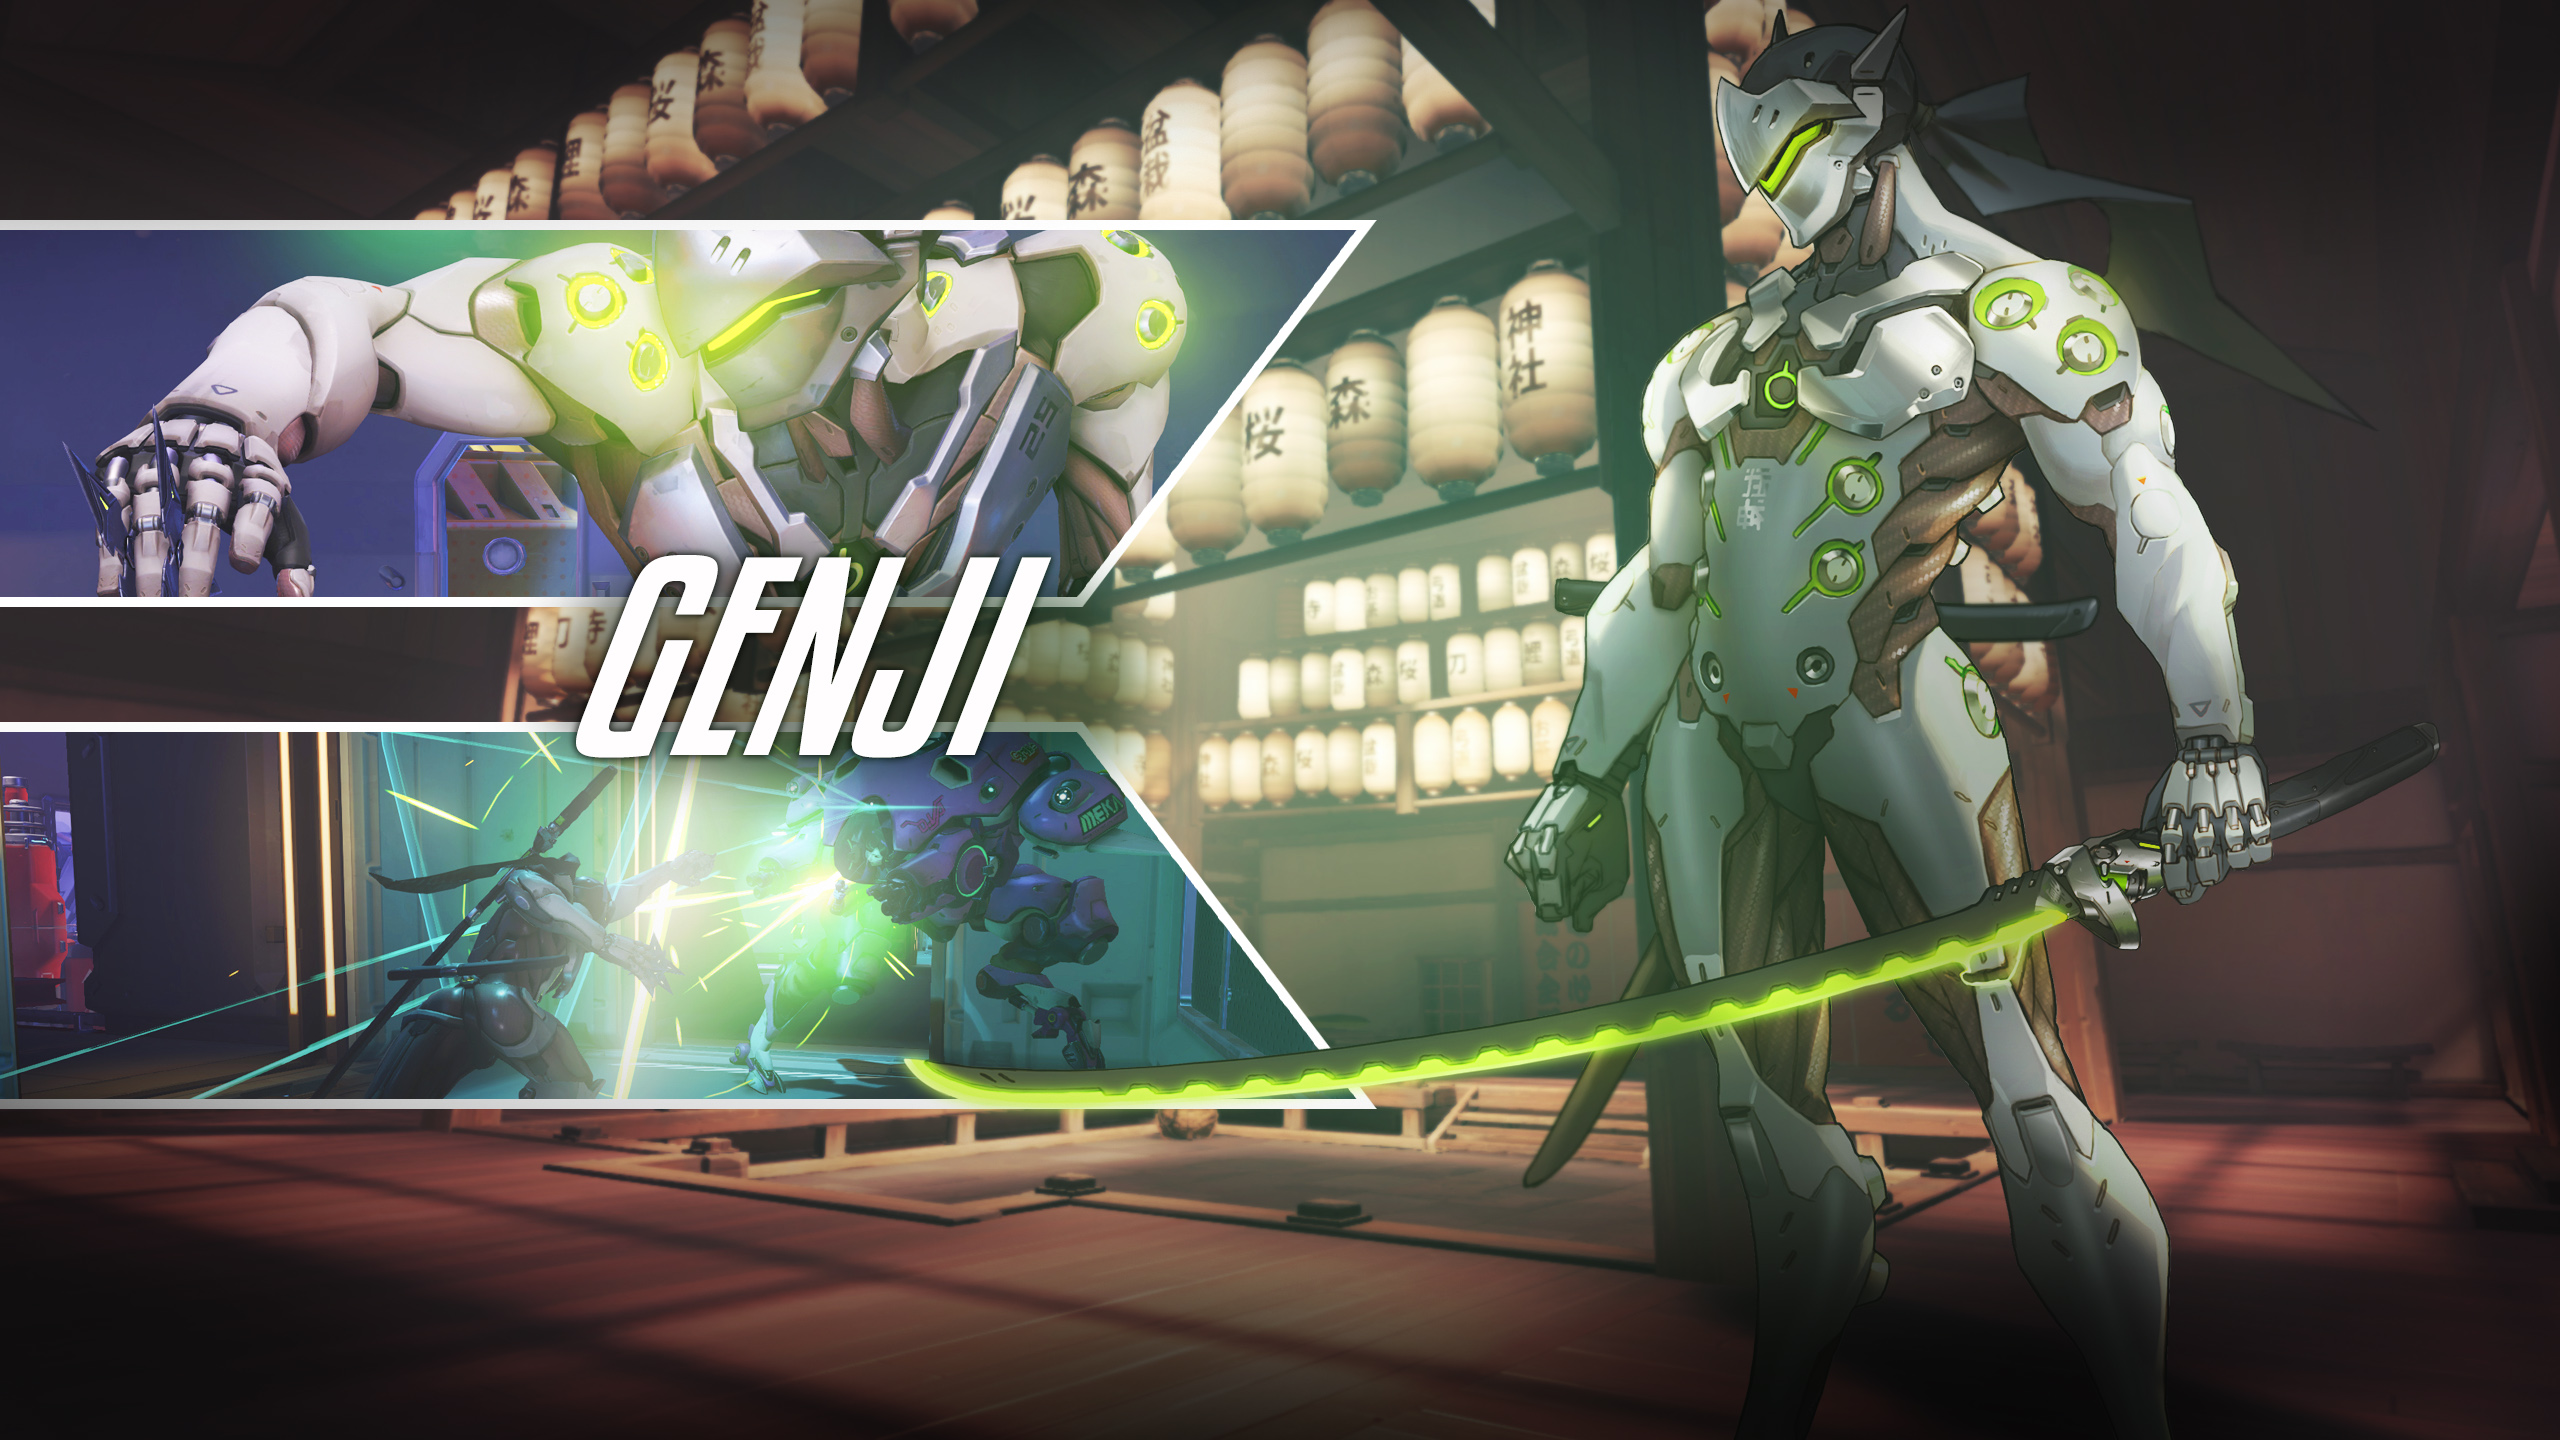 Genji Overwatch Hd Games 4k Wallpapers Images Backgrounds